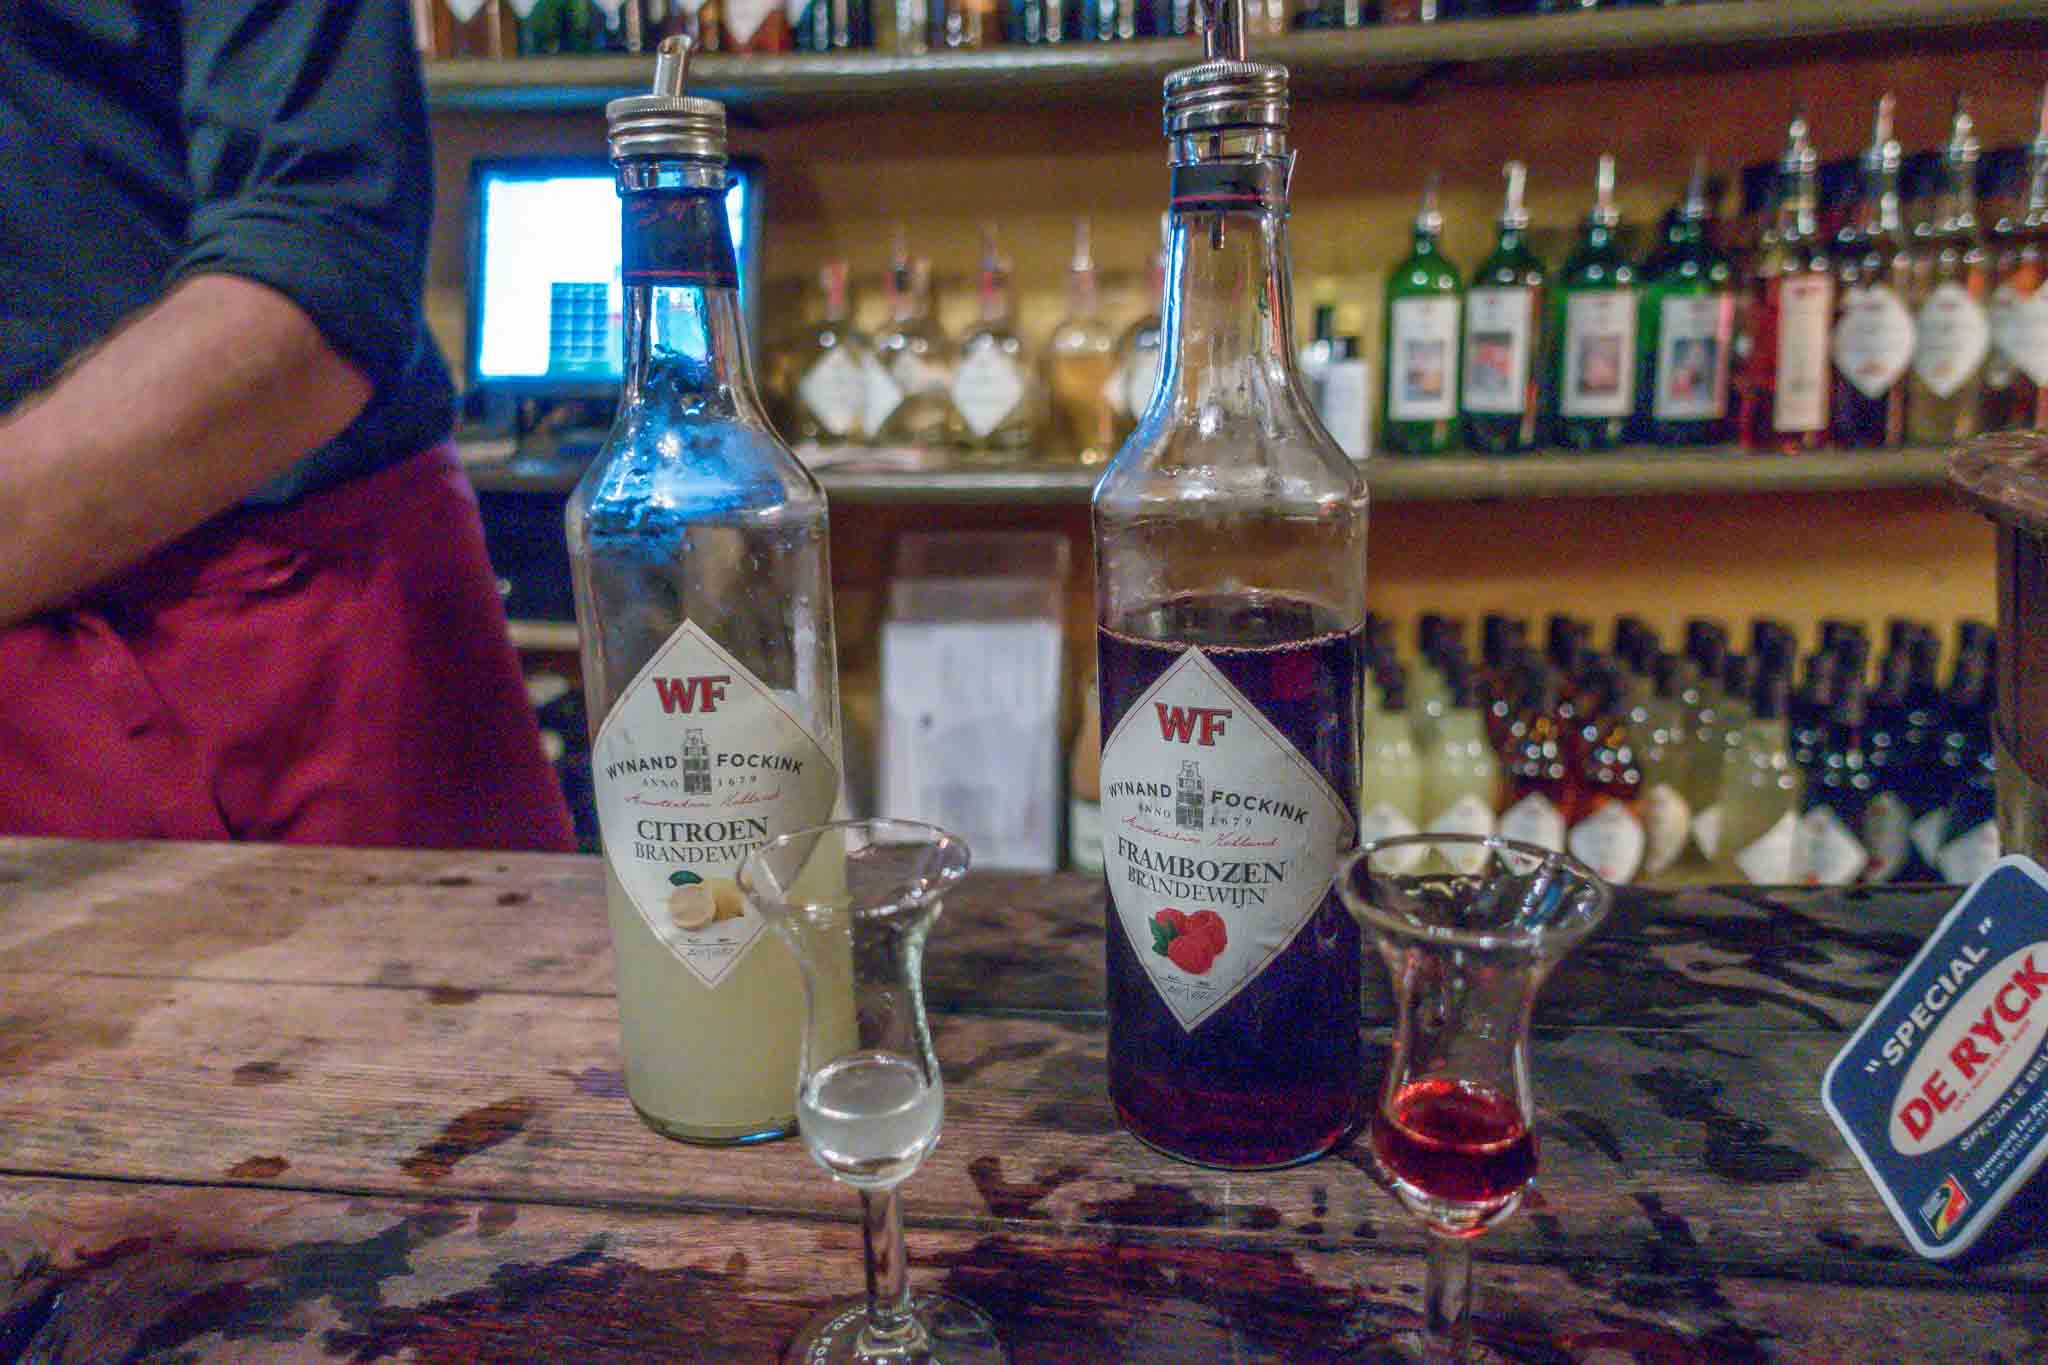 Bottles and glasses of fruit brandy on a bar